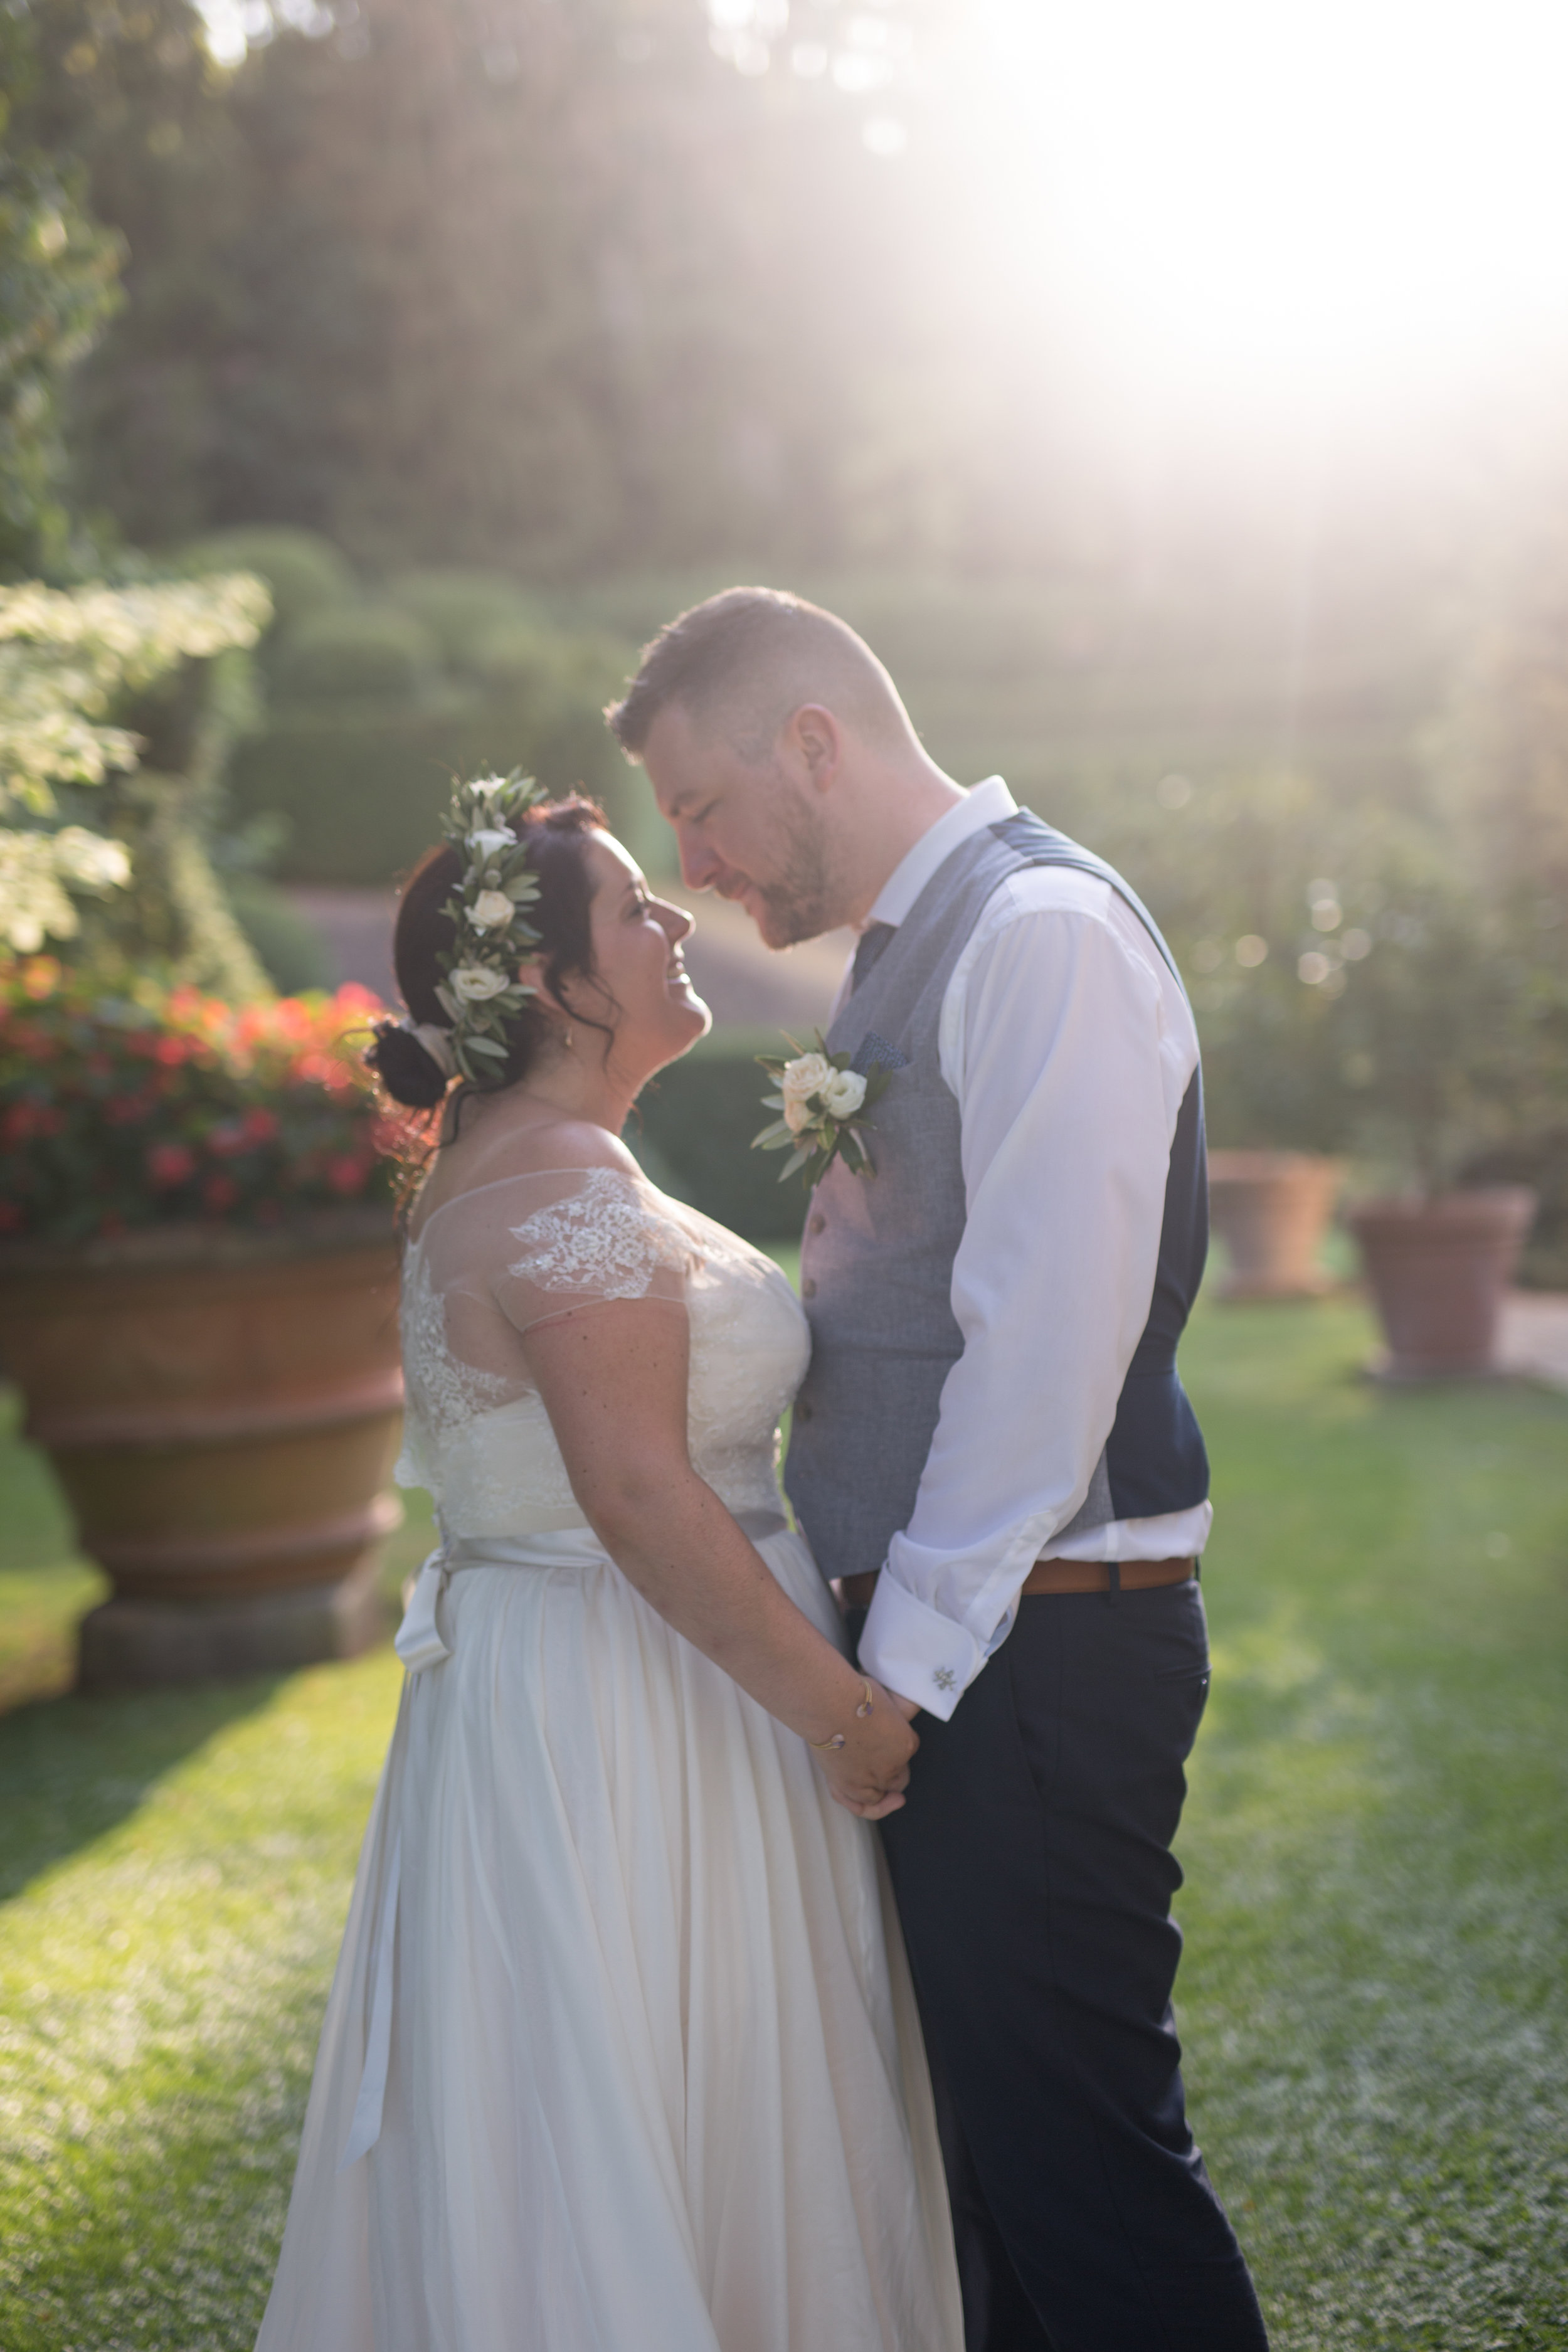 Amy & Sean, August 2017 - Emily enabled us to have the most beautiful wedding and 3 days with our guests - it was better than we could've ever imagined.She was amazingly organised and meticulous; no email or question went unanswered and she ensured the whole process was almost stress-free!We can't thank her and her team enough.It was a day we'll never forget.